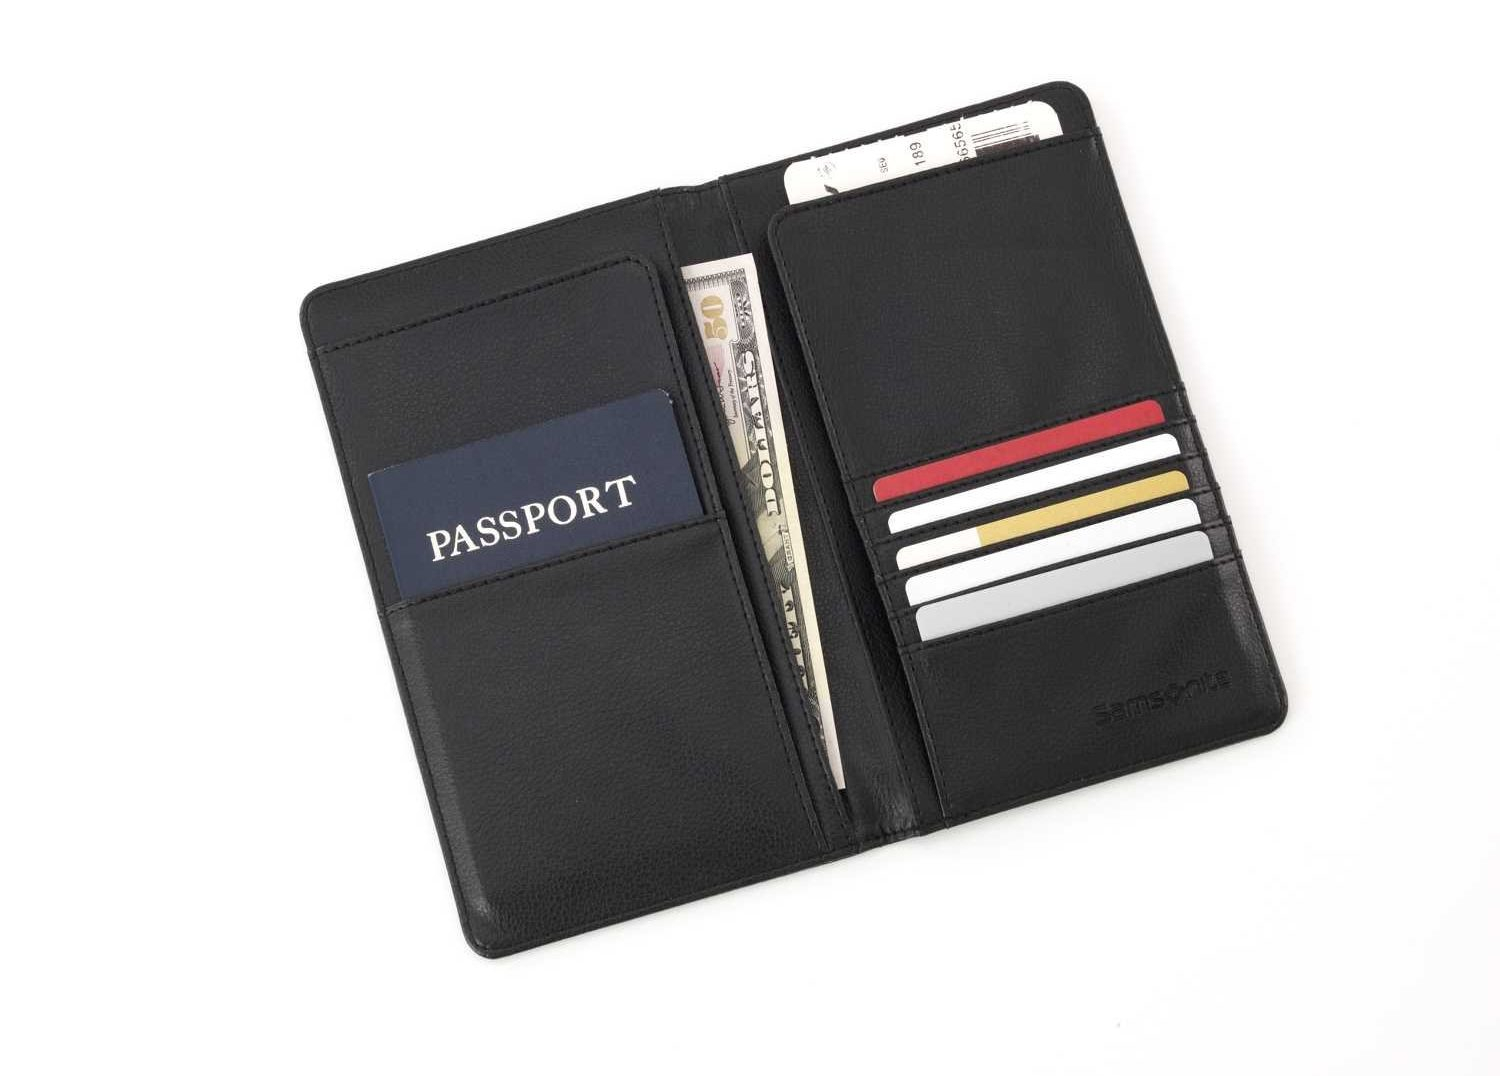 Best Passport Holder-Samsonite Luggage Travel Wallet